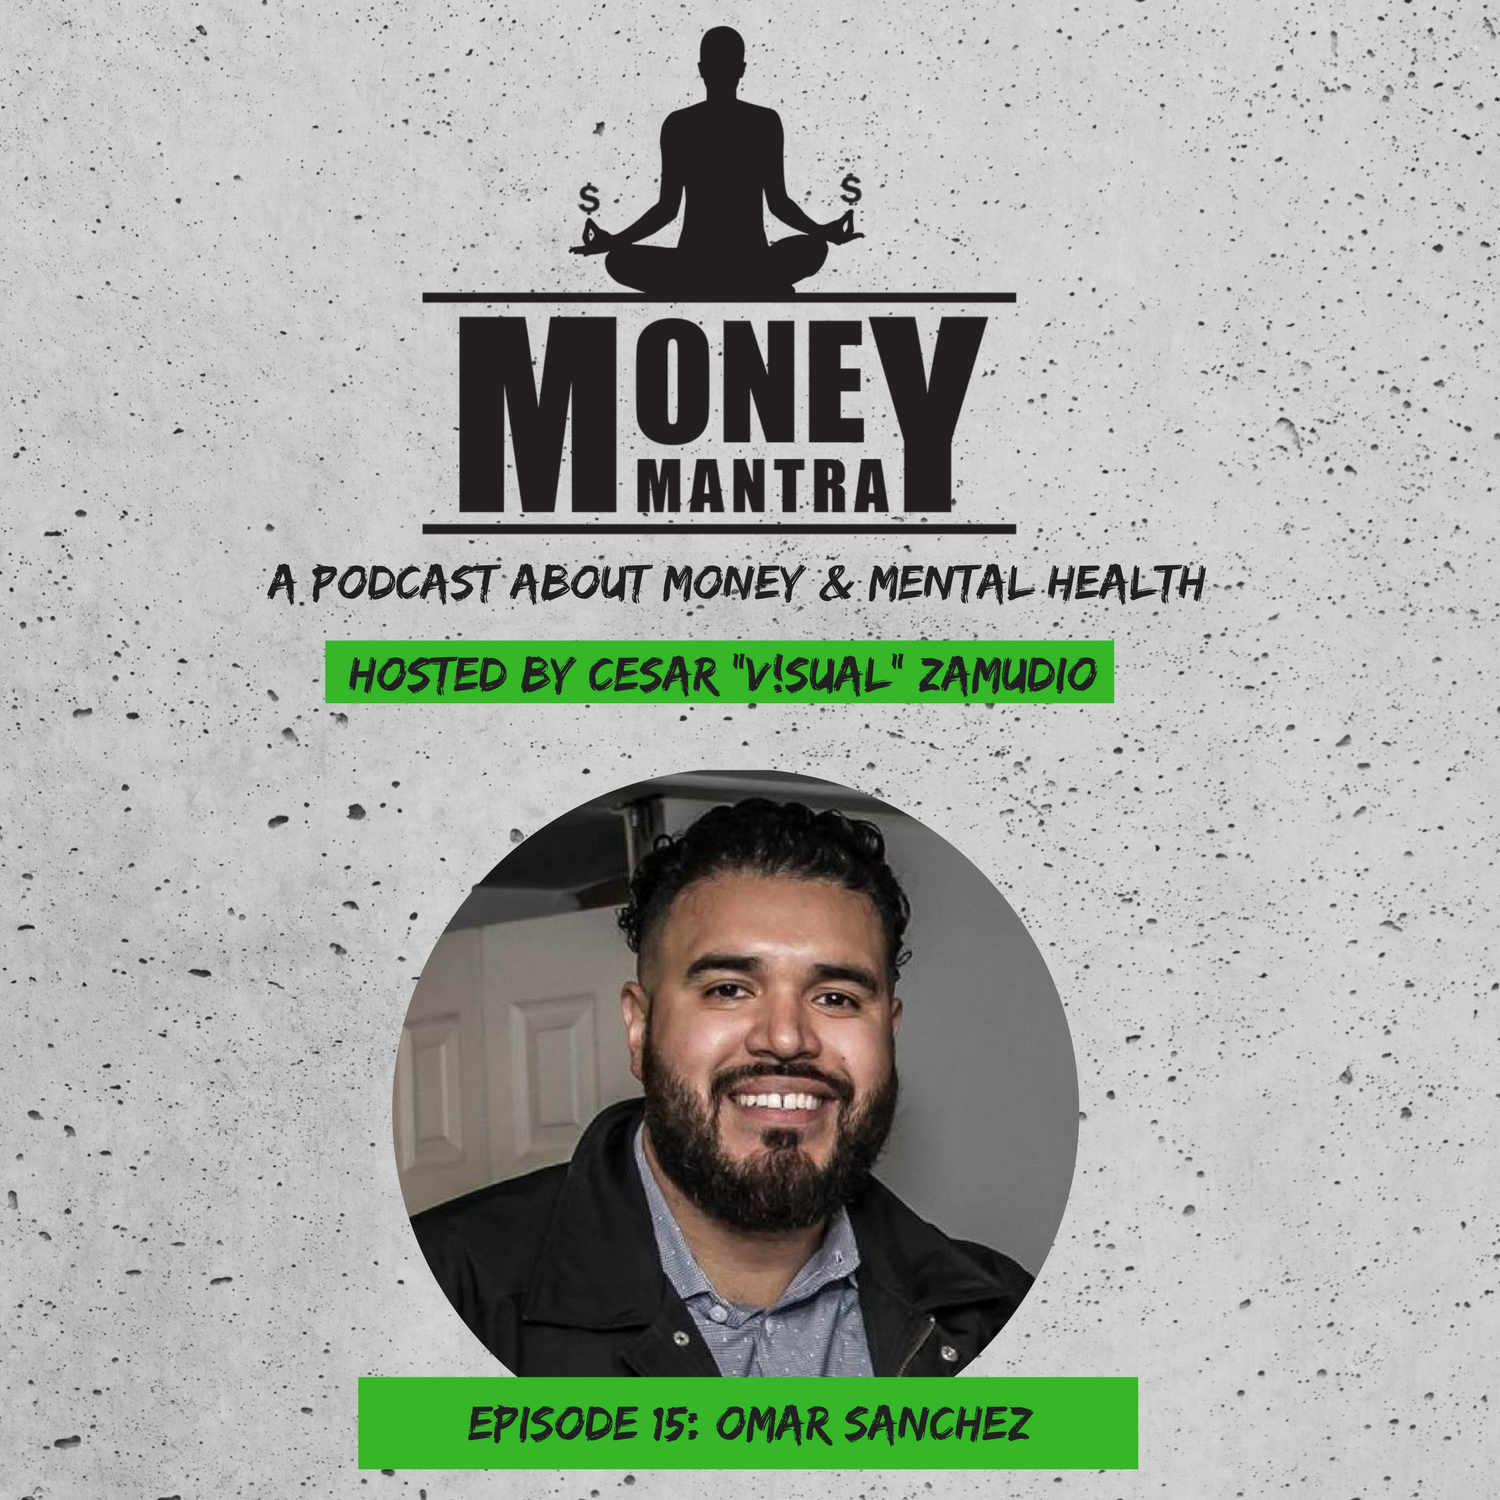 Omar Sanchez - has been in business as the owner/operator of Final Cuts barber shop in Chicago, where he also a barber. Omar talks about his financial struggles including his near foreclosure and how he bounced back, plus expectations and more.